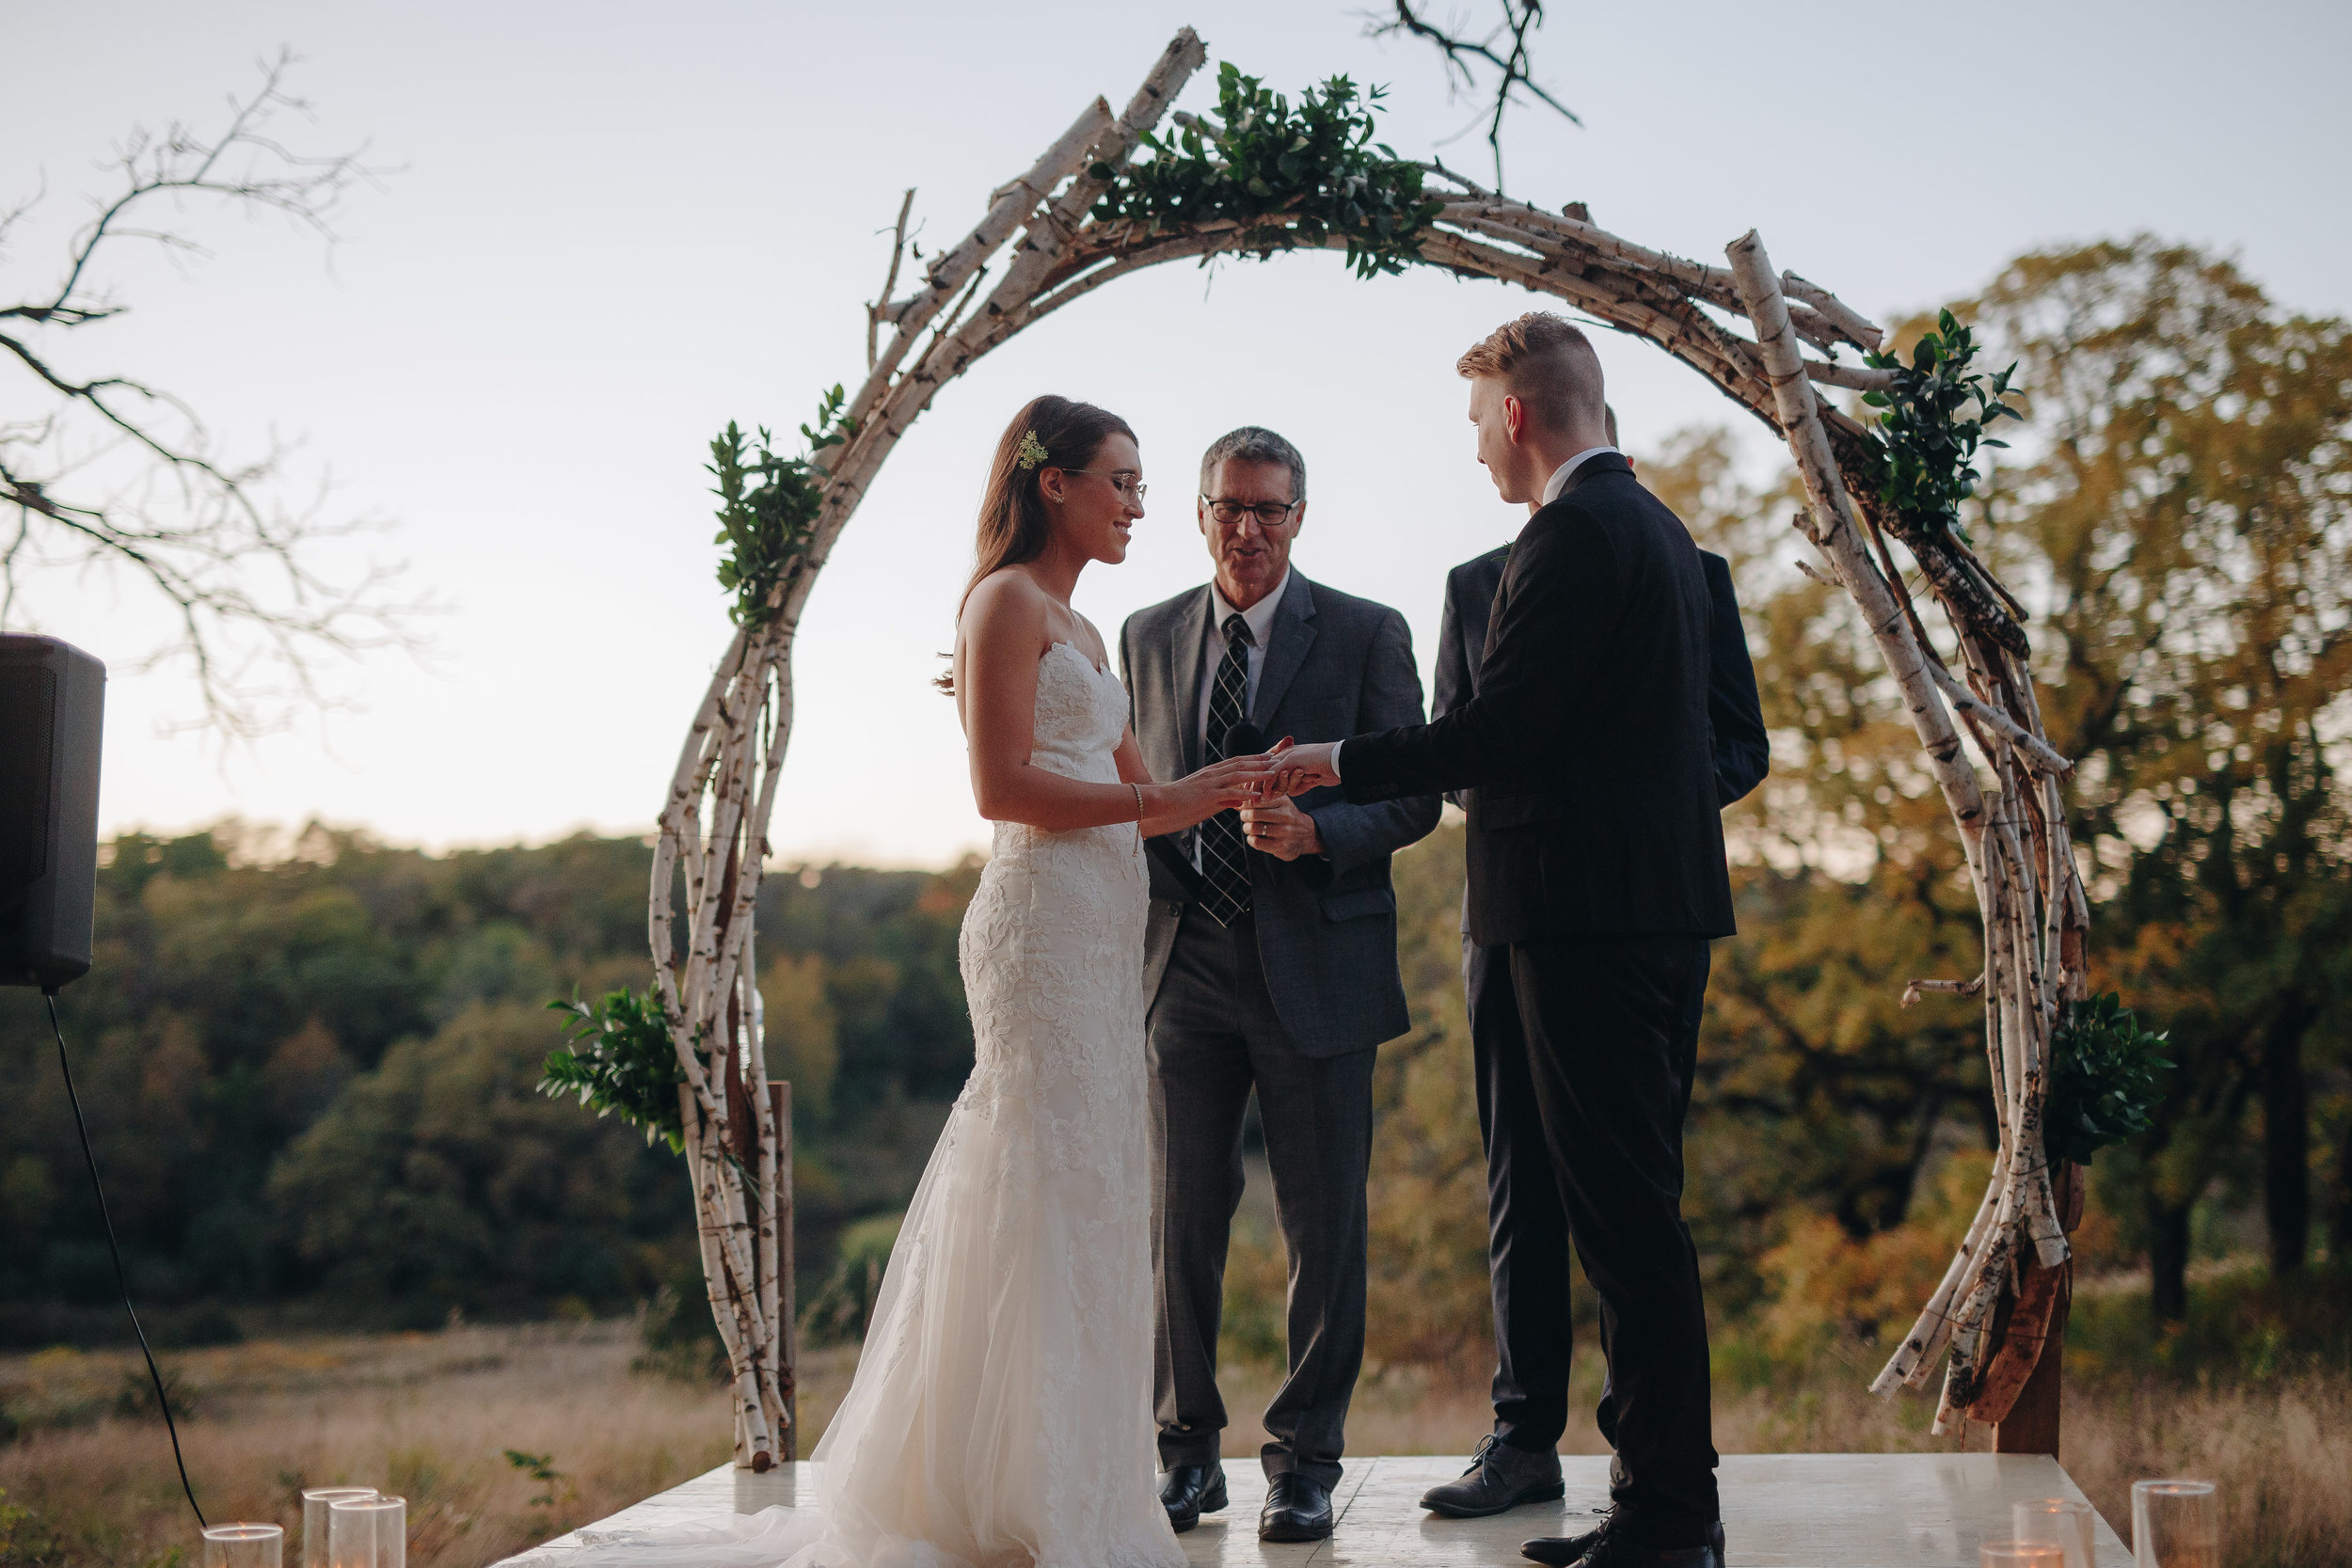 Bride putting ring on groom during wedding ceremony